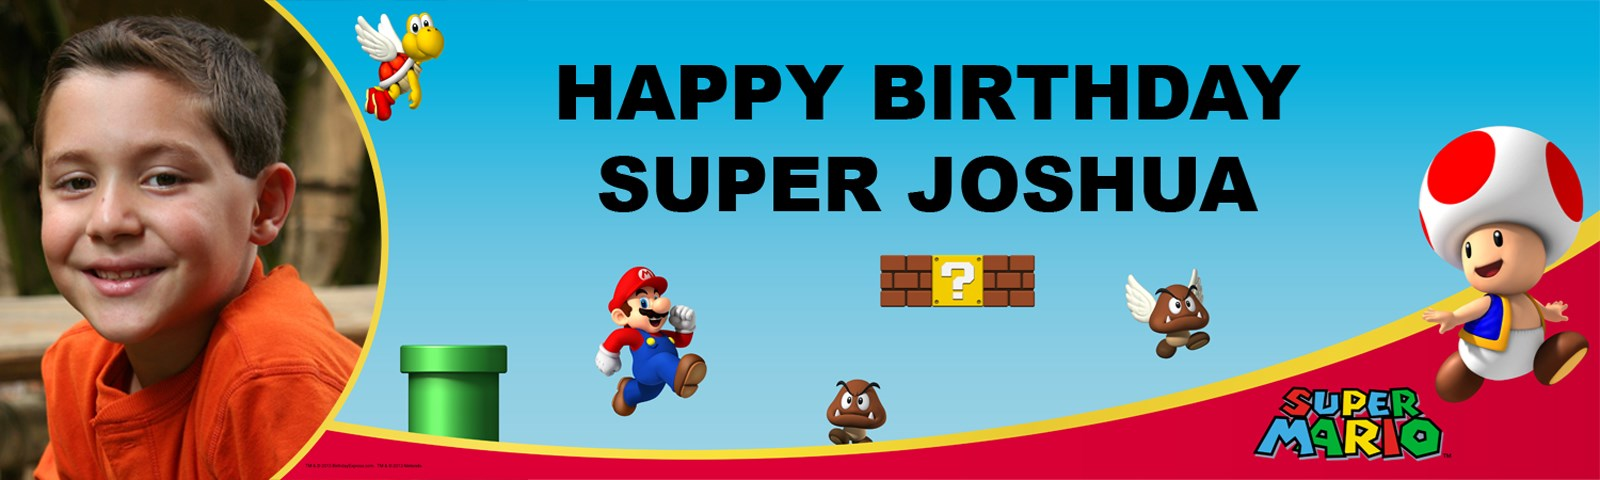 Super Mario Bros. - Toad Personalized Photo Banner